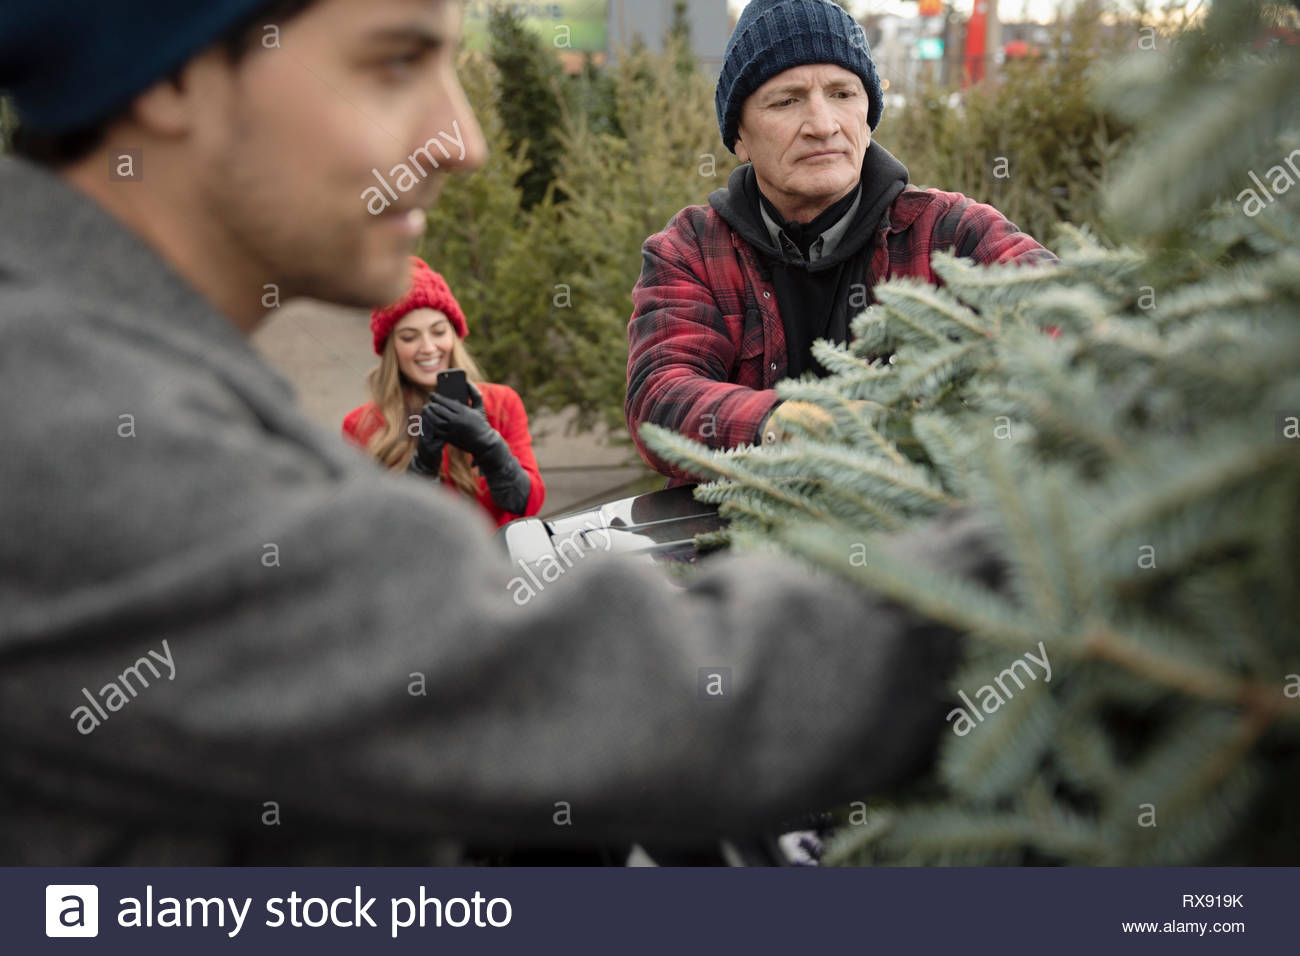 Worker helping man tie down christmas tree onto car at christmas market - Stock Image